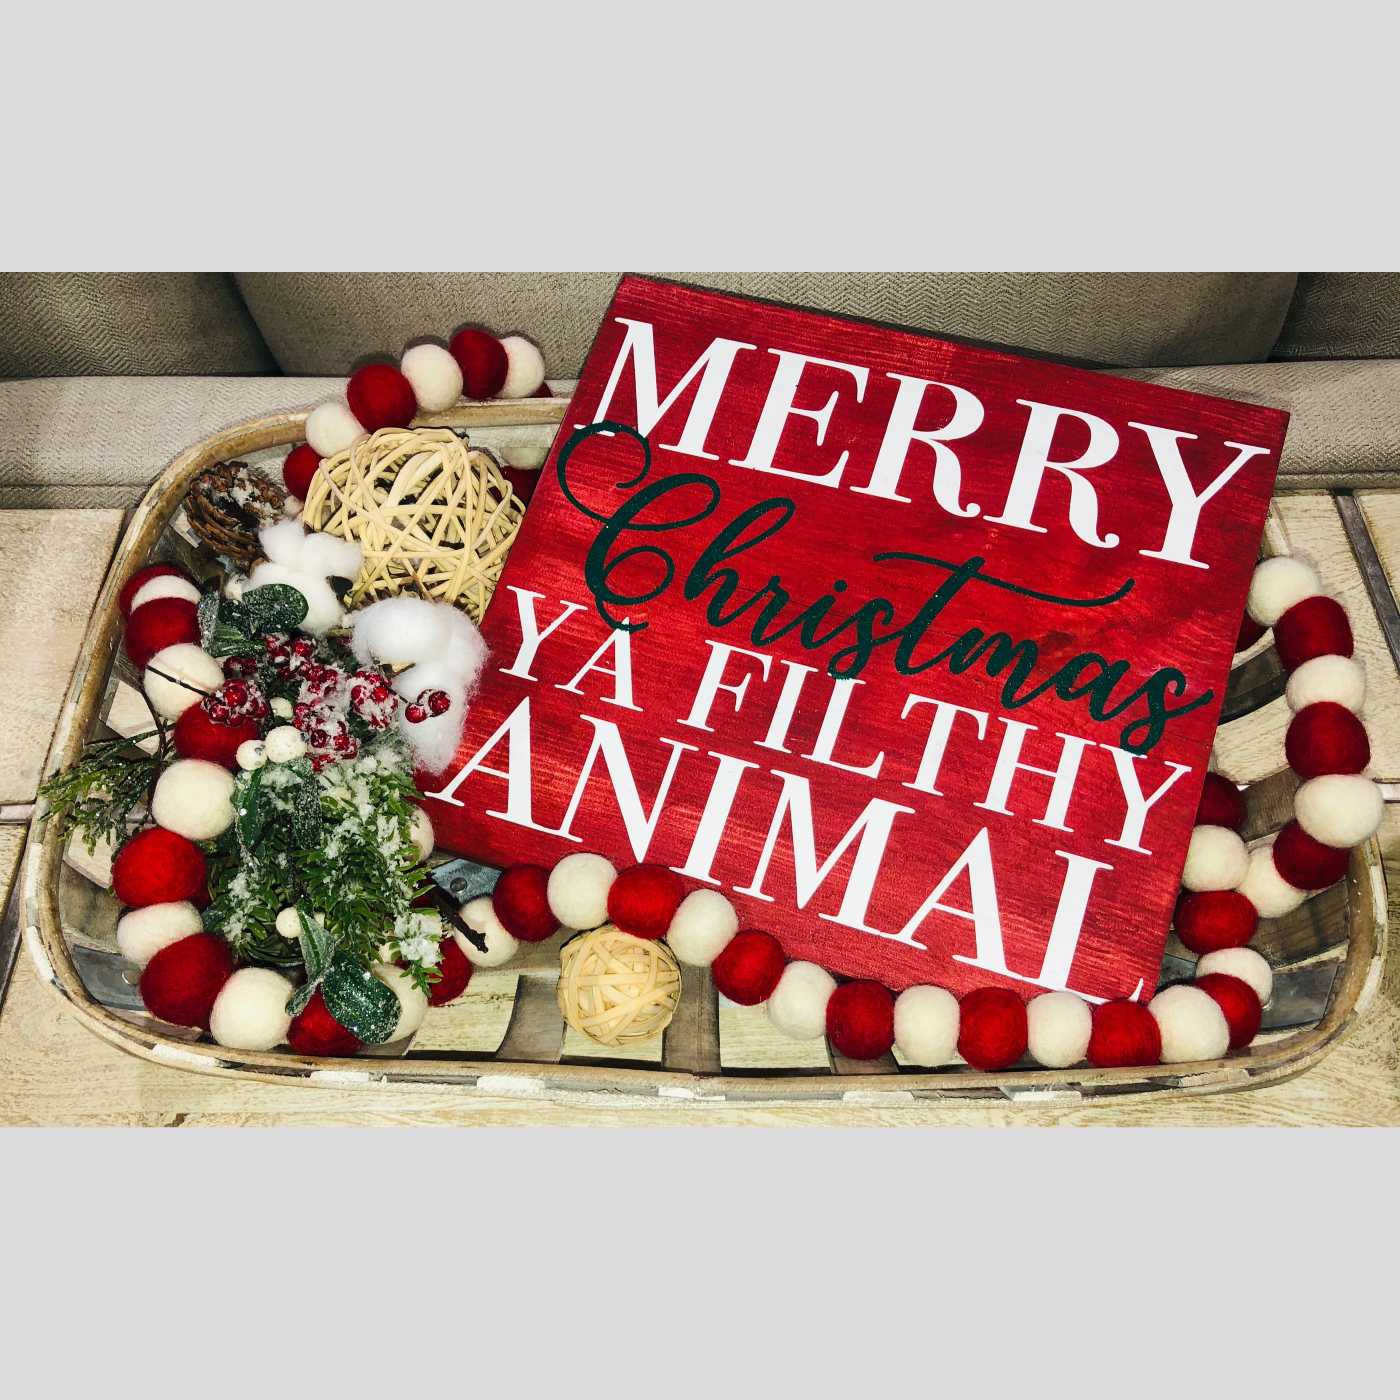 Merry Christmas Ya Filthy Animal DIY Wood Sign Bethlehem PA